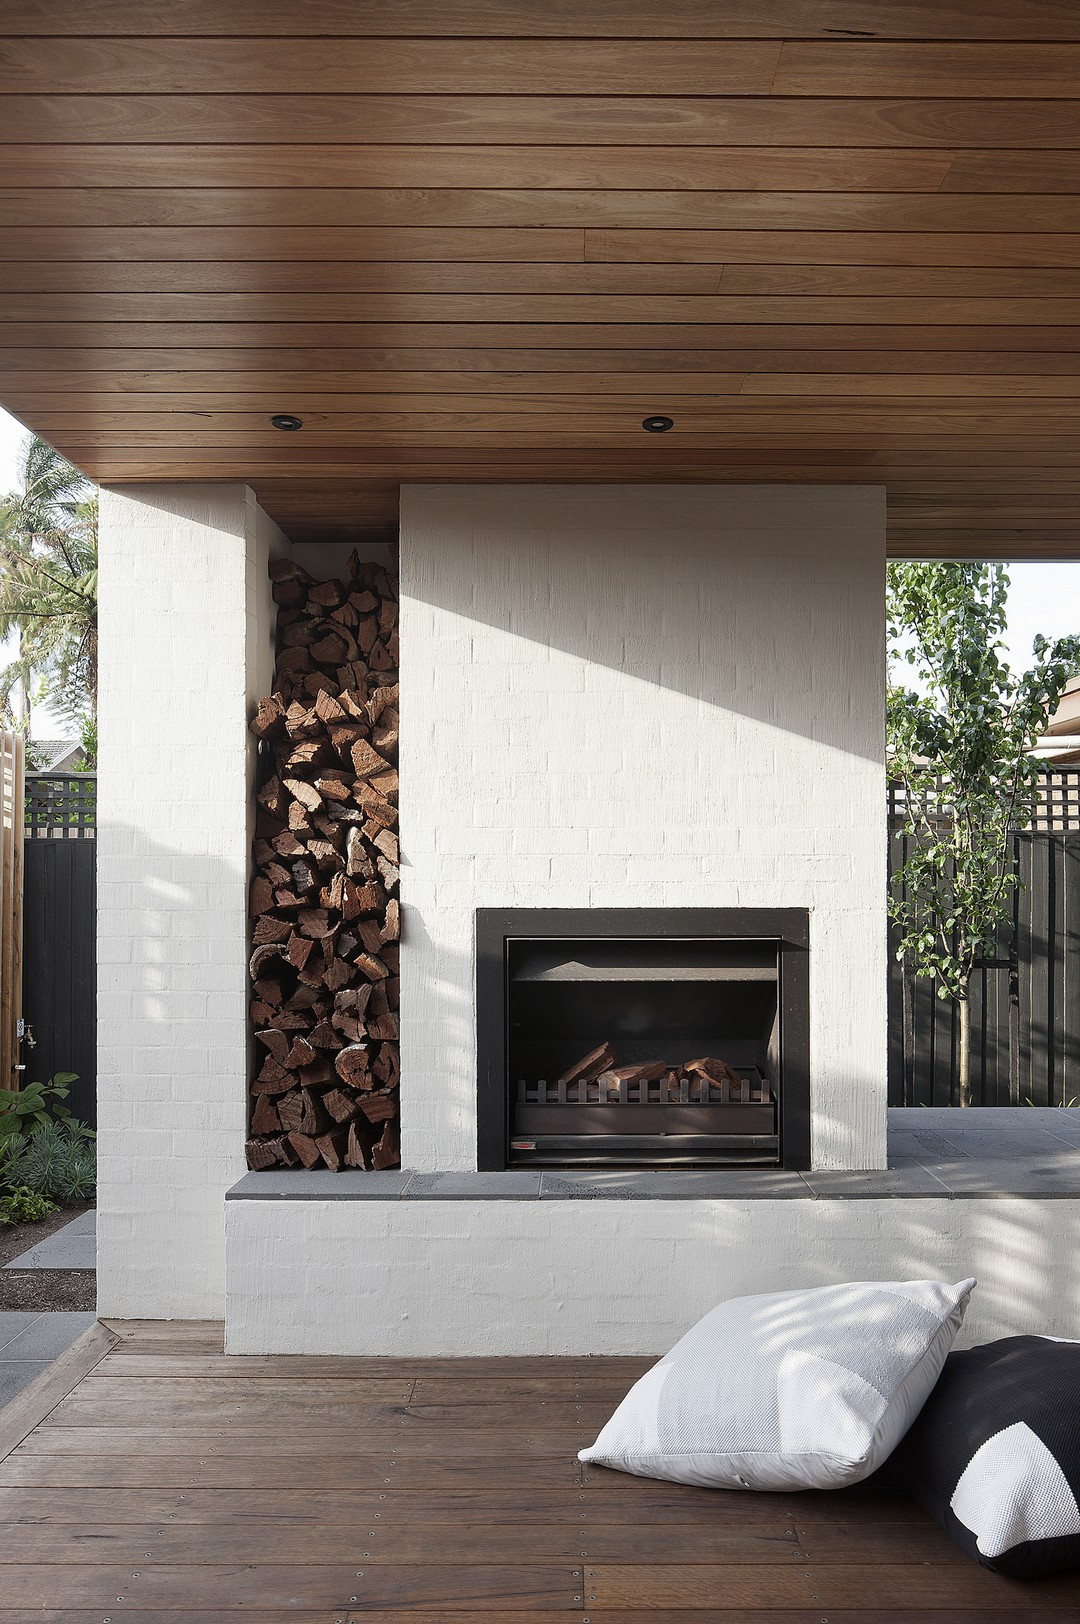 Outdoor Fireplace Design 22 Awesome Outdoor Fireplace Design Ideas Echitecture